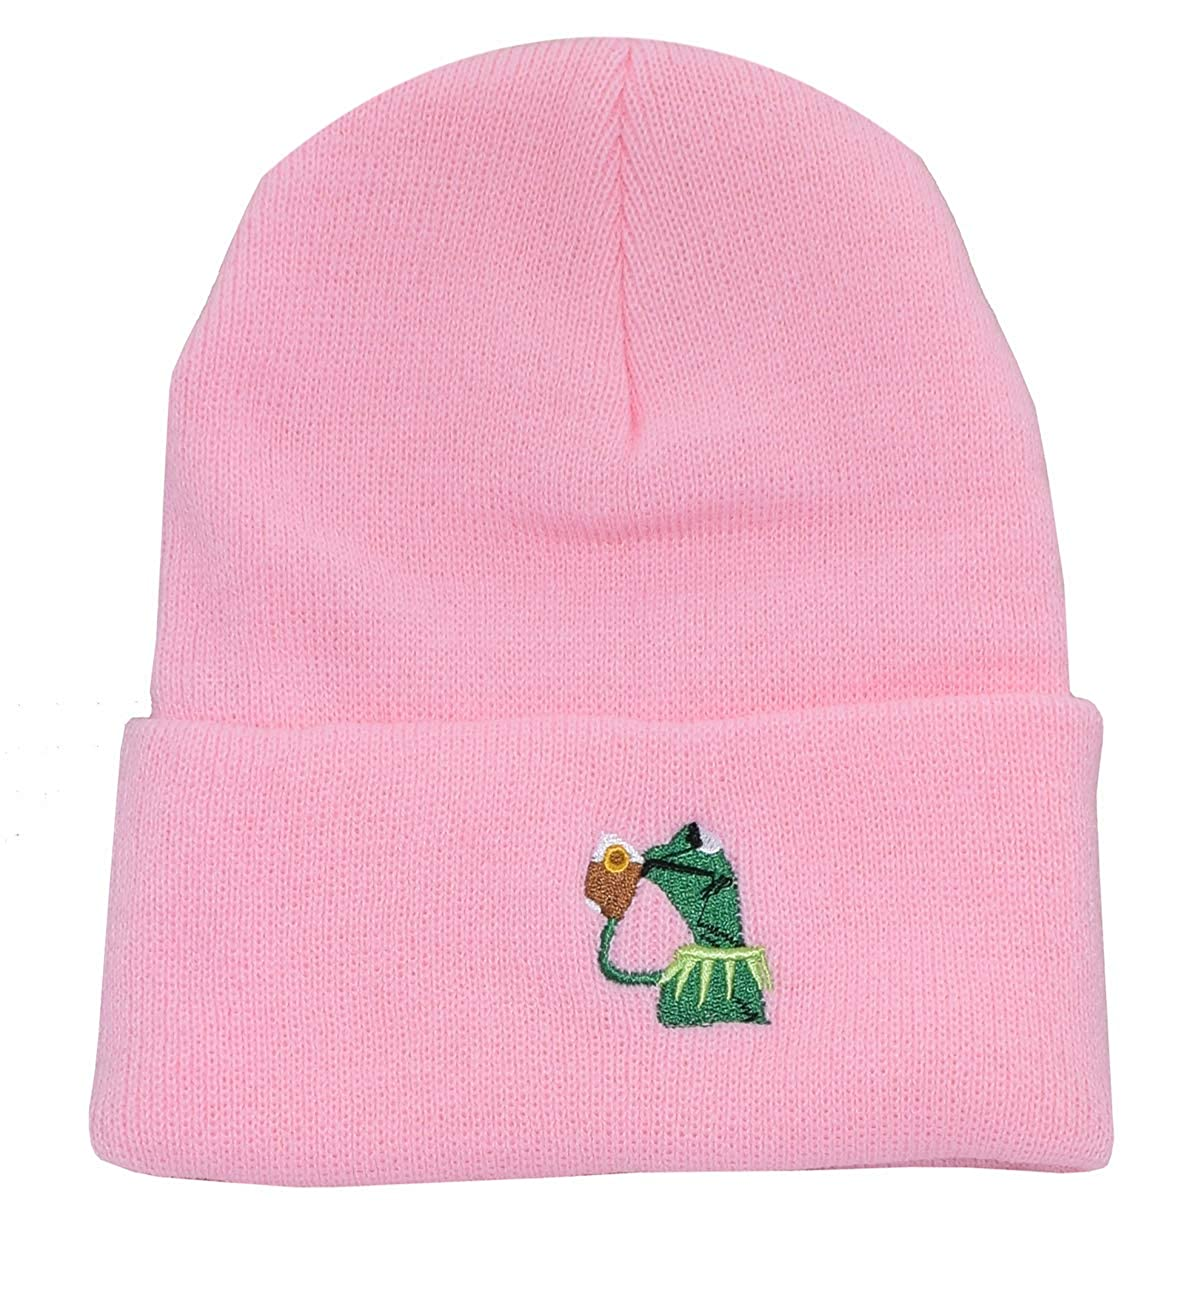 Winter Kermit The Frog Sipping Tea Beanie Warm Comfortable Soft Oversized Thick Cable Knitted Hat Unisex Knit Caps